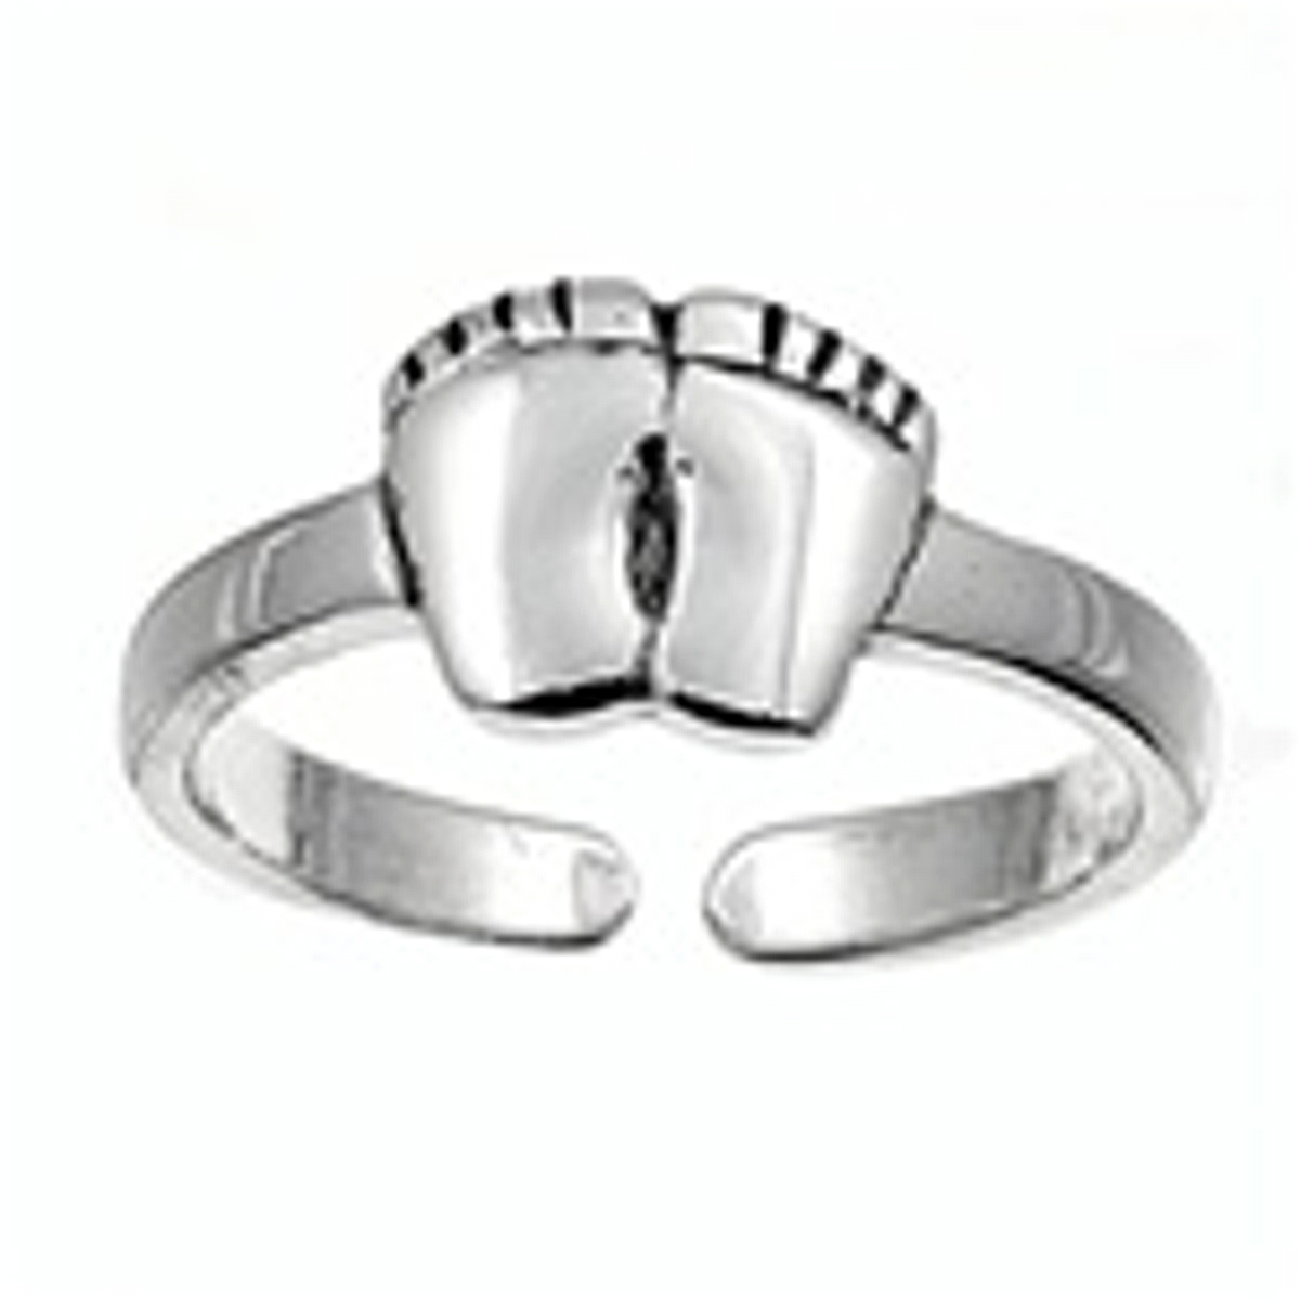 Bare Feet Foot Prints Adjustable Toe Ring